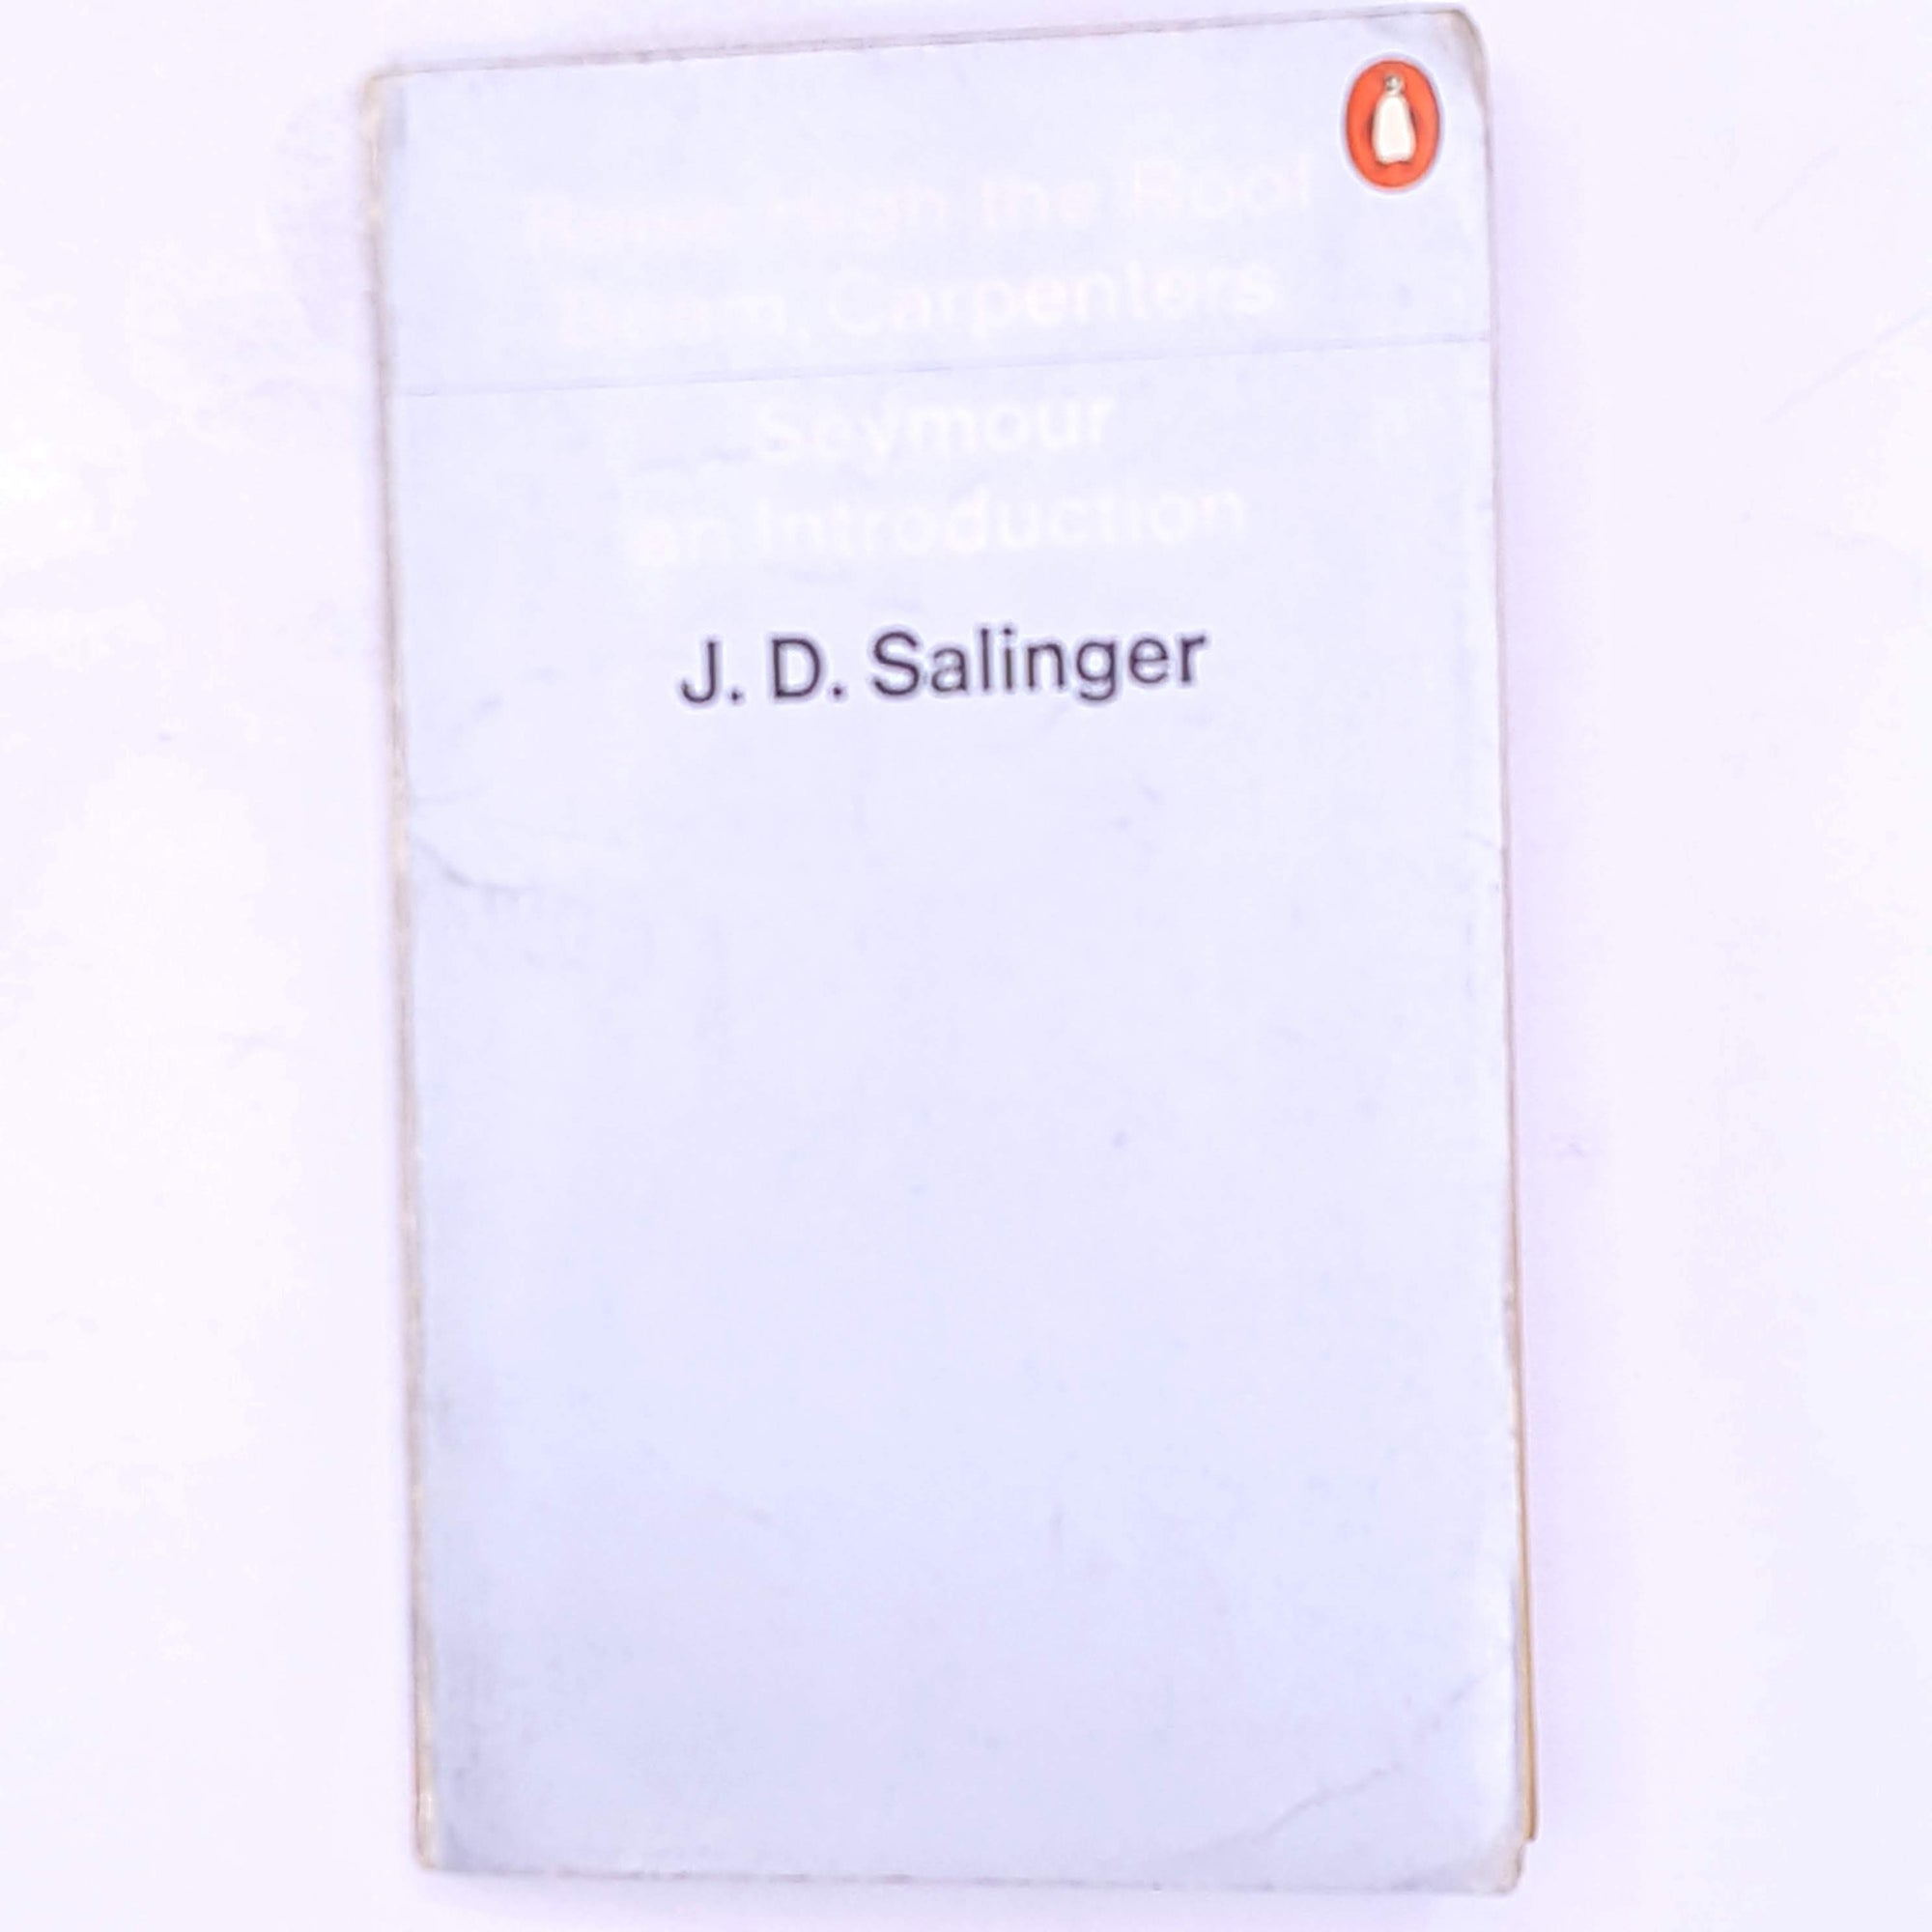 Raise High the Roof Beam, Carpenters Seymour an Introduction by J.D. Salinger